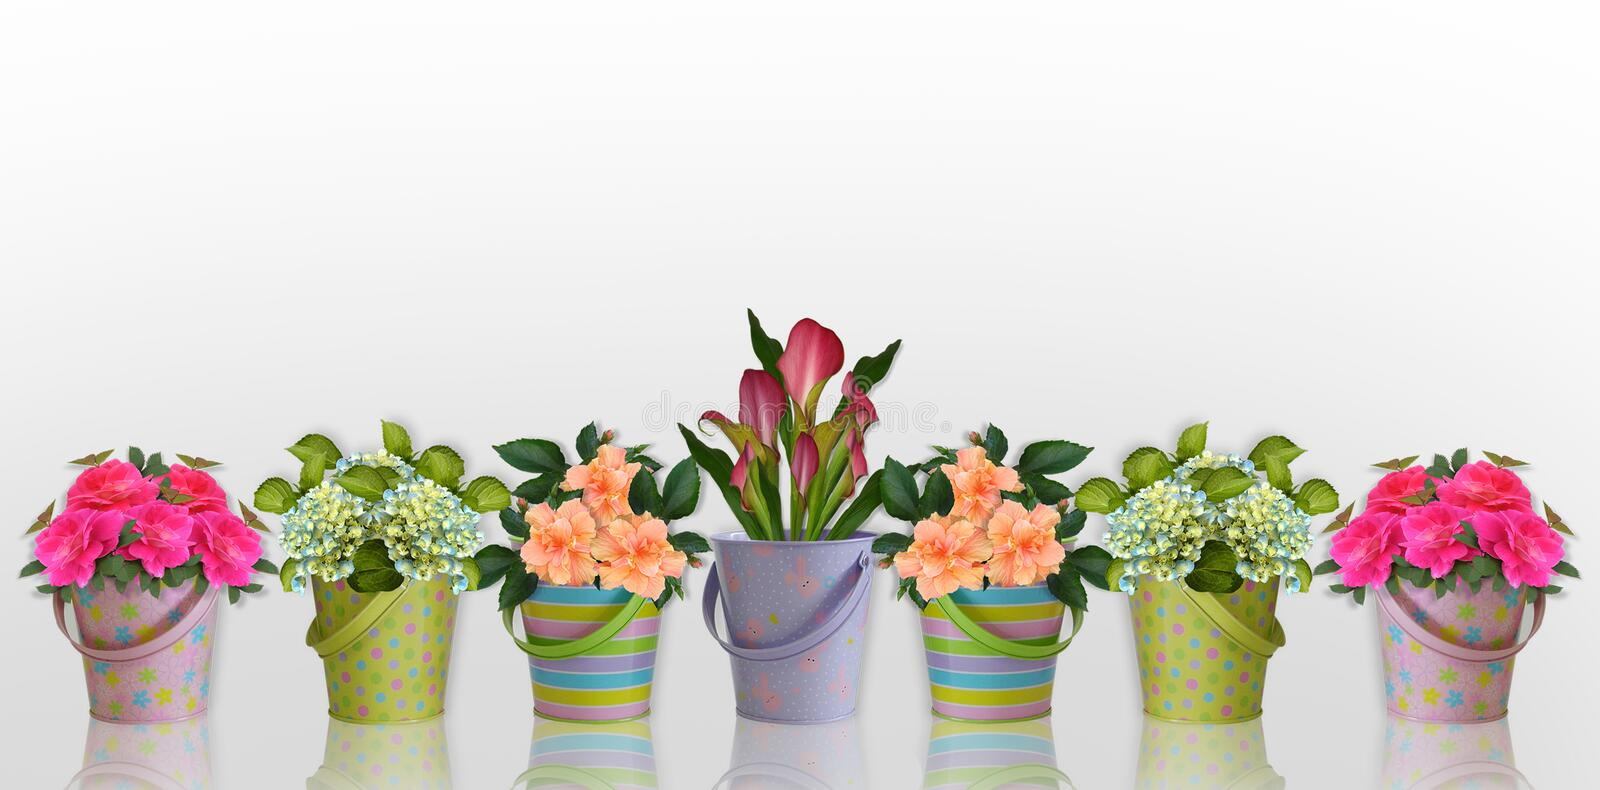 Floral border Flowers in colorful containers. Image and illustration composition Floral border Flowers in colorful containers for stationery background royalty free illustration